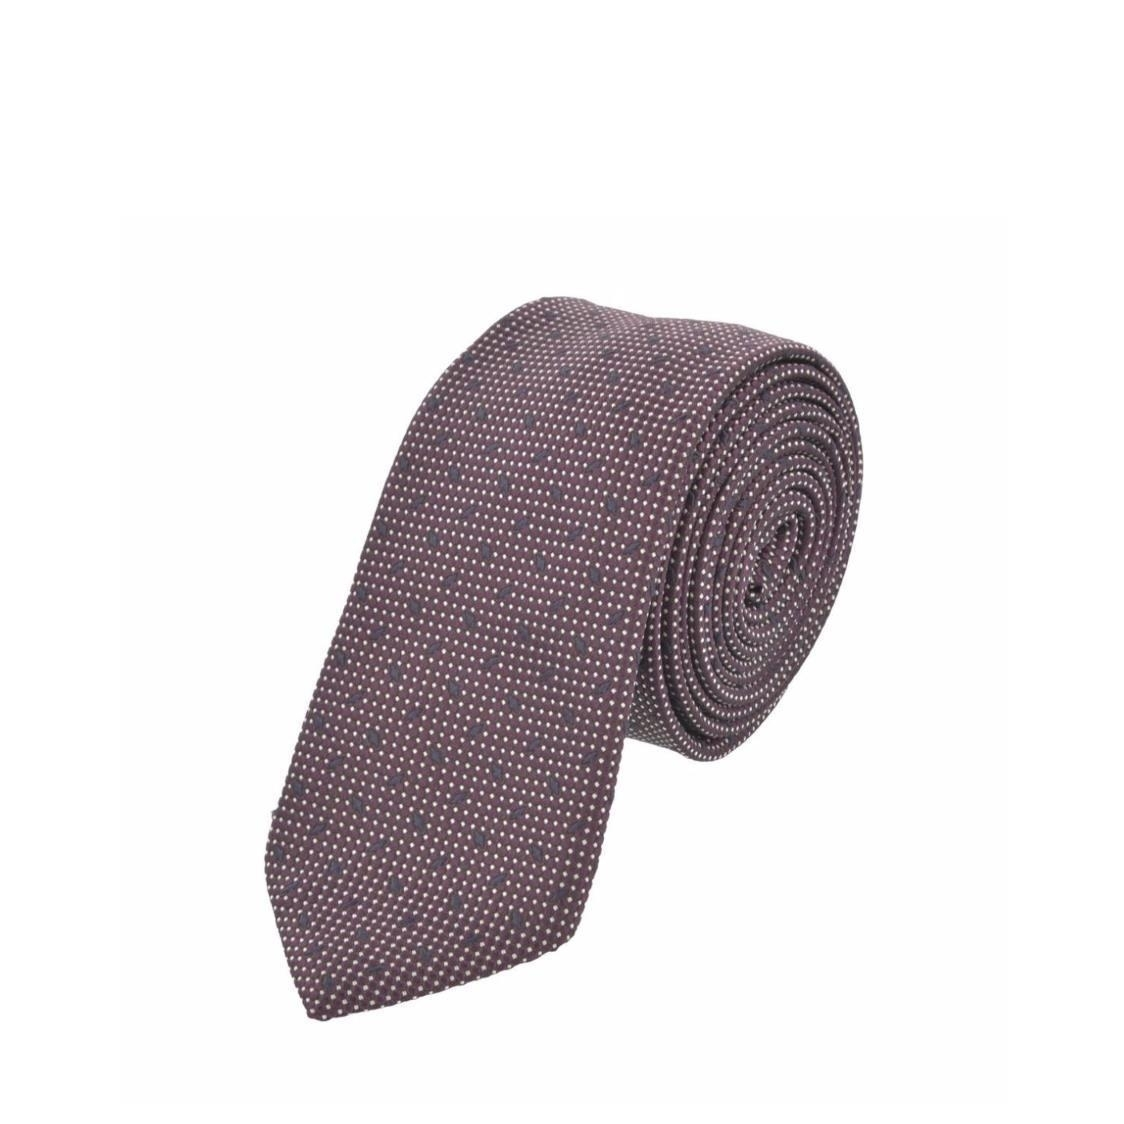 Jacquard Silk Tie In Light Maroon with Grey Dots